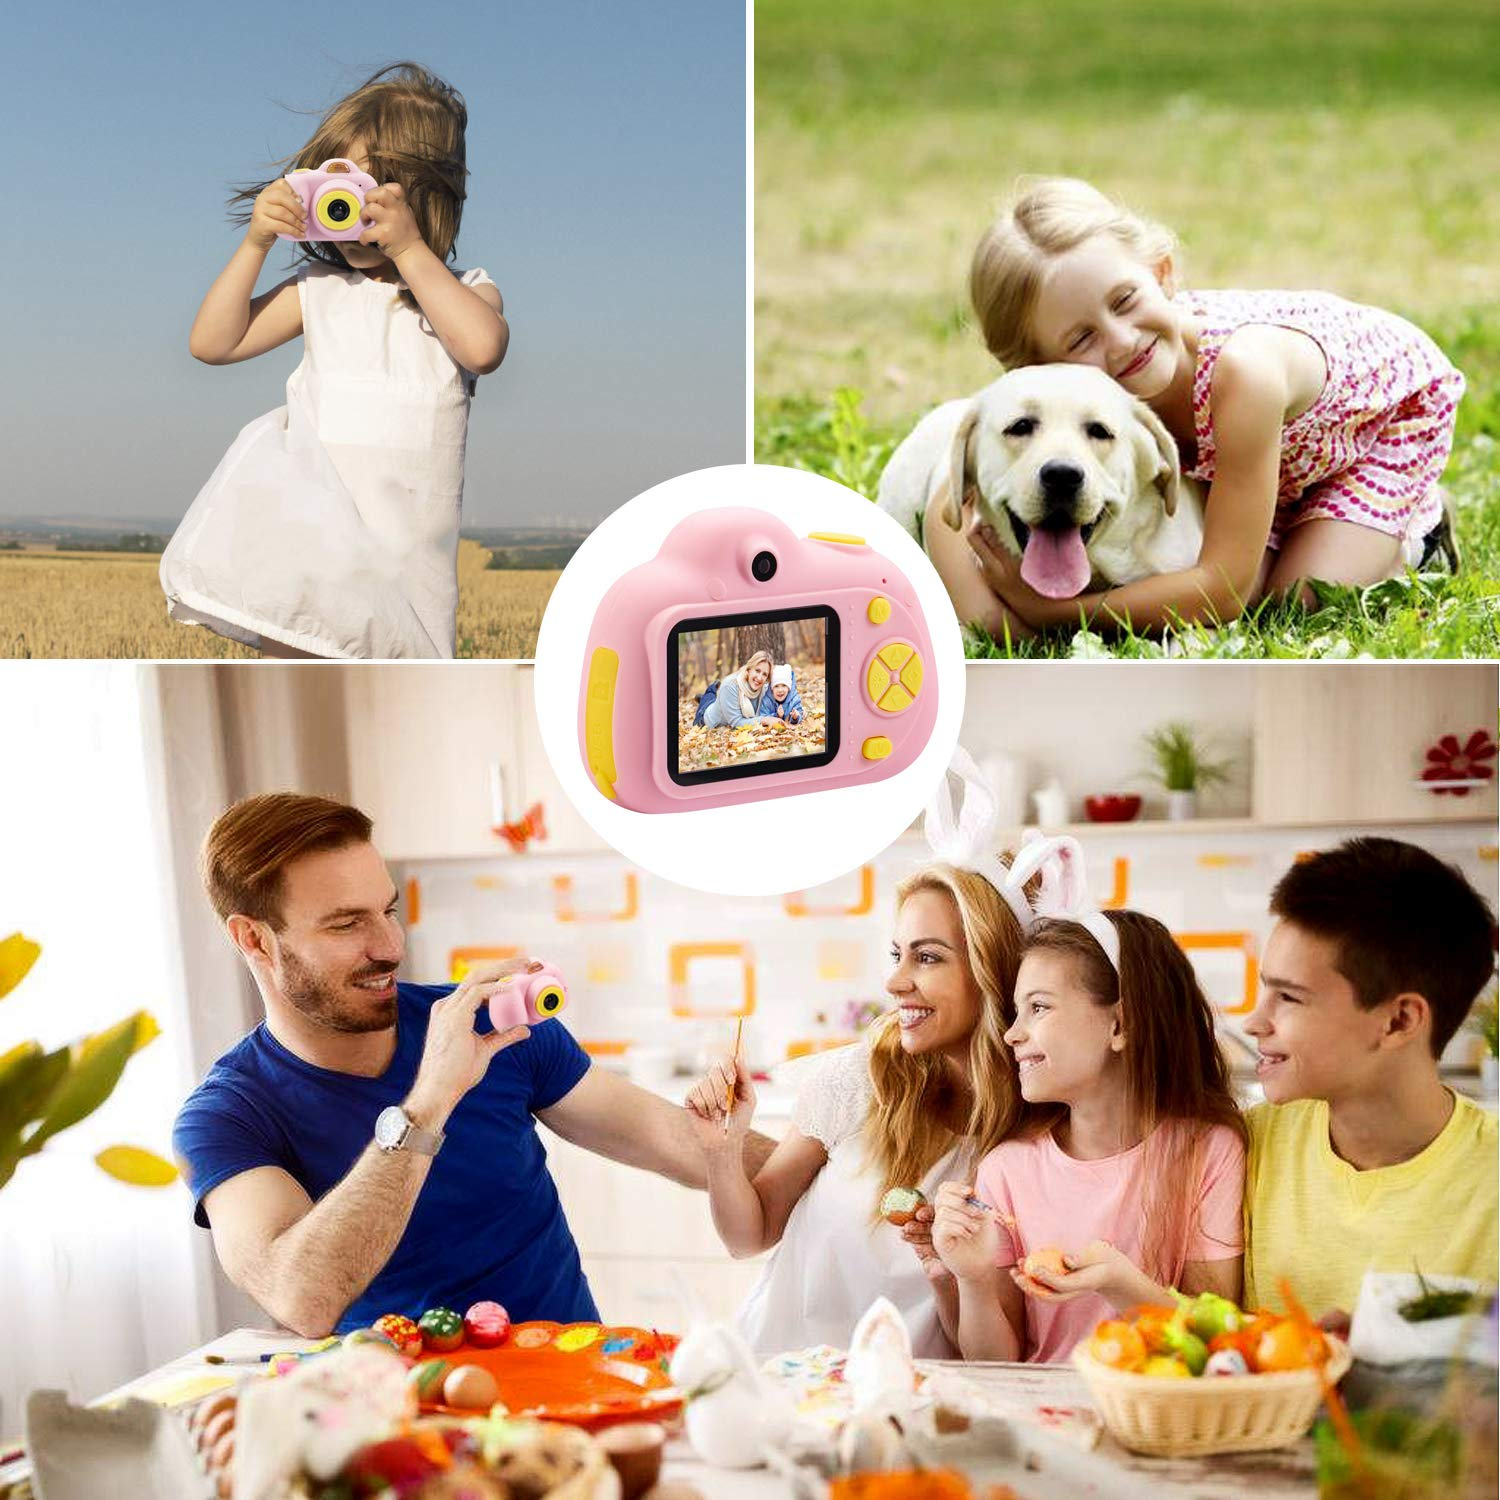 DIIGIITO Kids Camera Gifts for 4-8 Year Old Girls, Shockproof Cameras Great Gift Mini Child Camcorder for Little Girl with Soft Silicone Shell for Outdoor Play,(16GB Memory Card Included) (Pink) by DIIGIITO (Image #5)